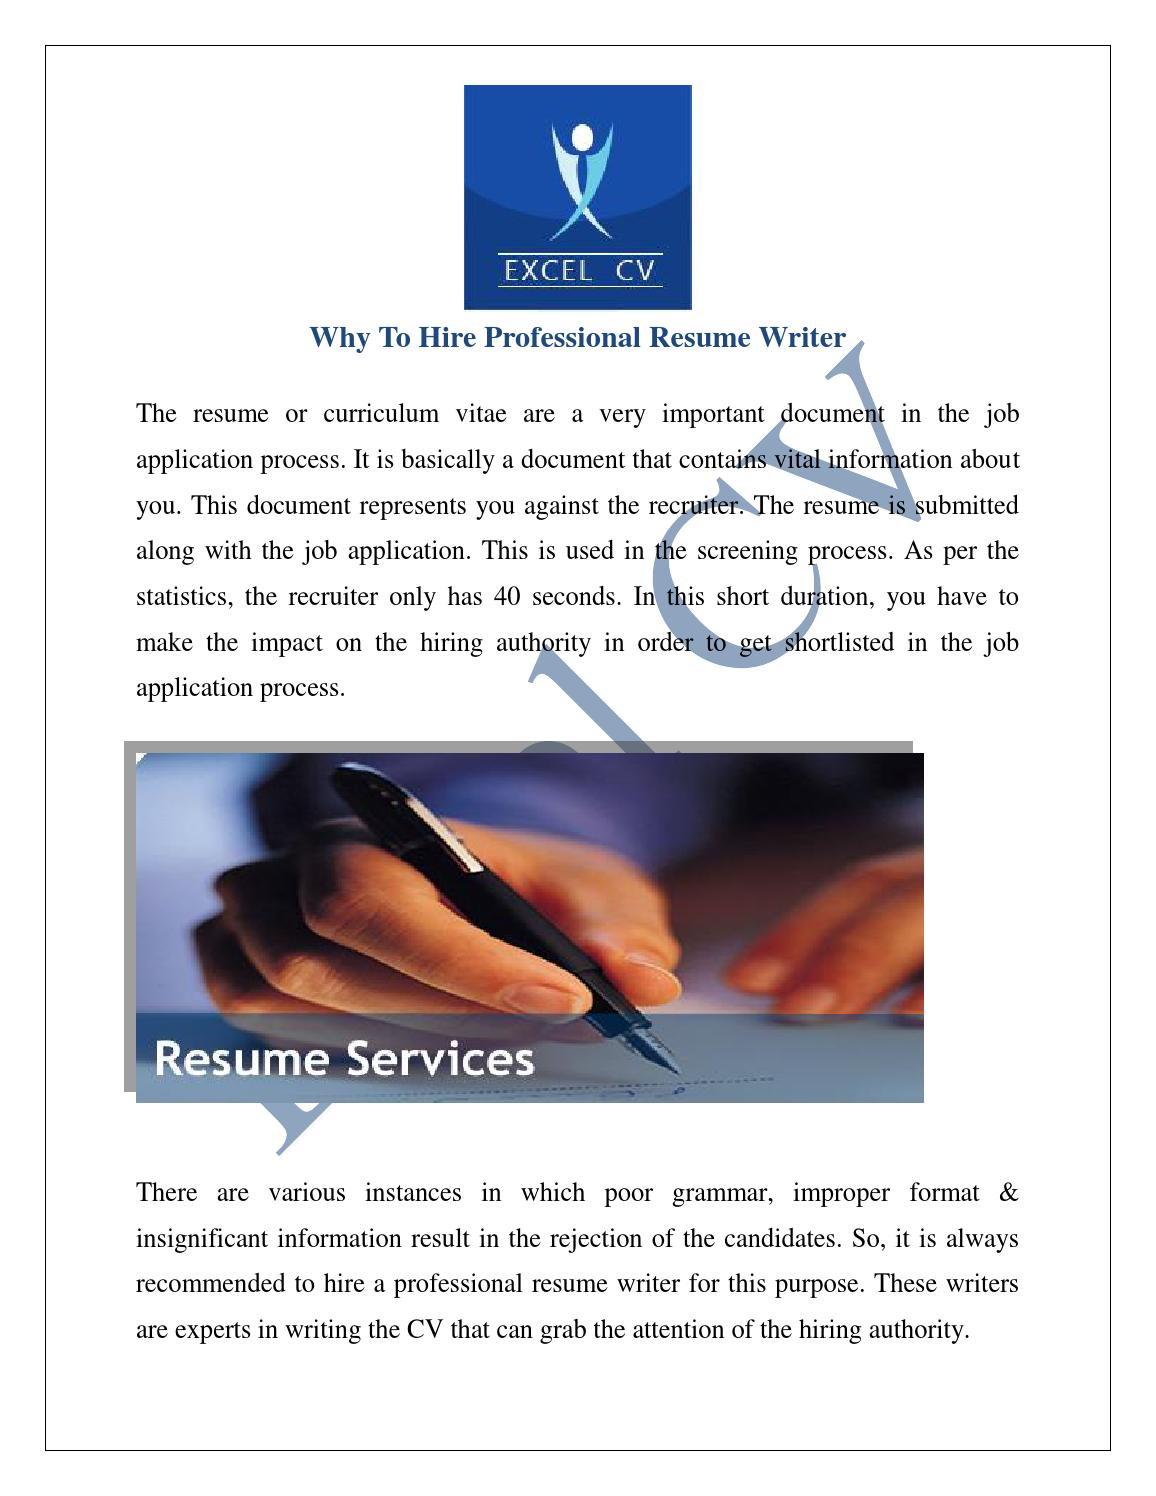 Cv resume writing services india